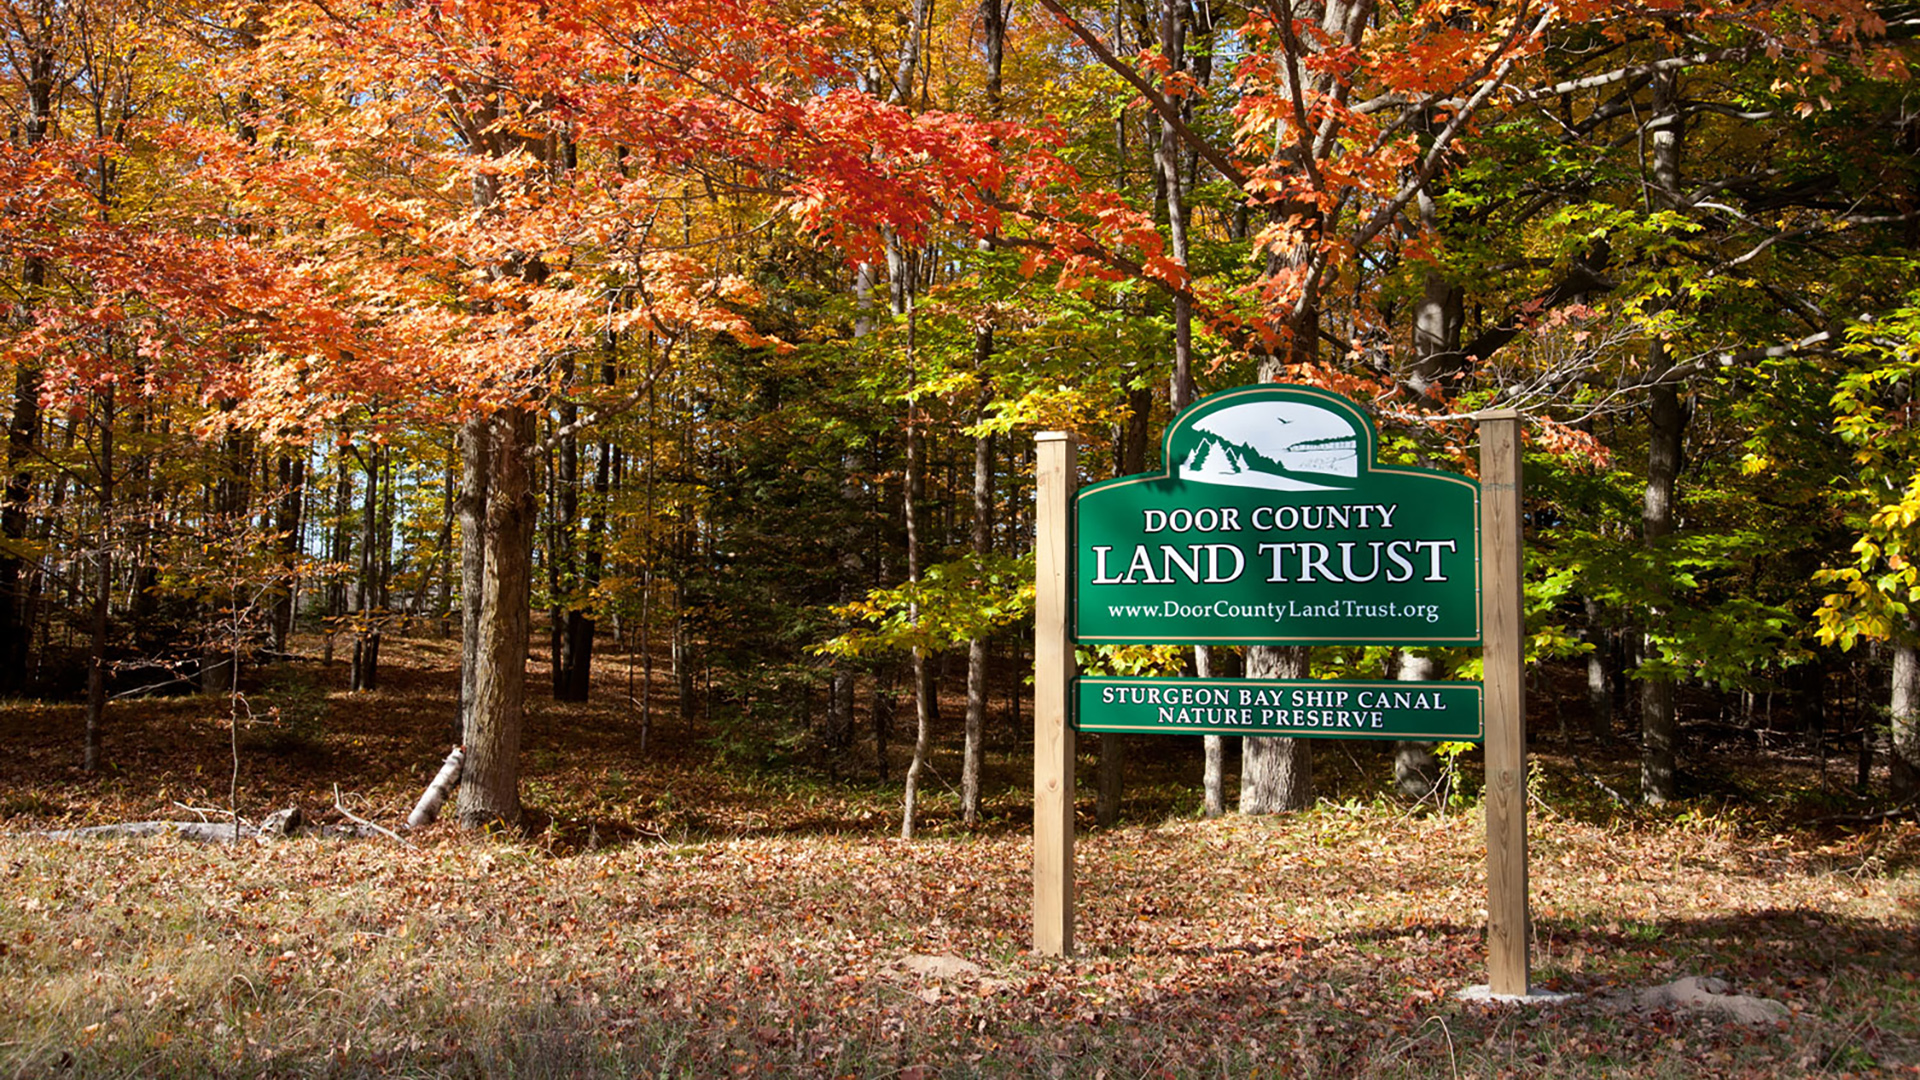 Door County Land Trust